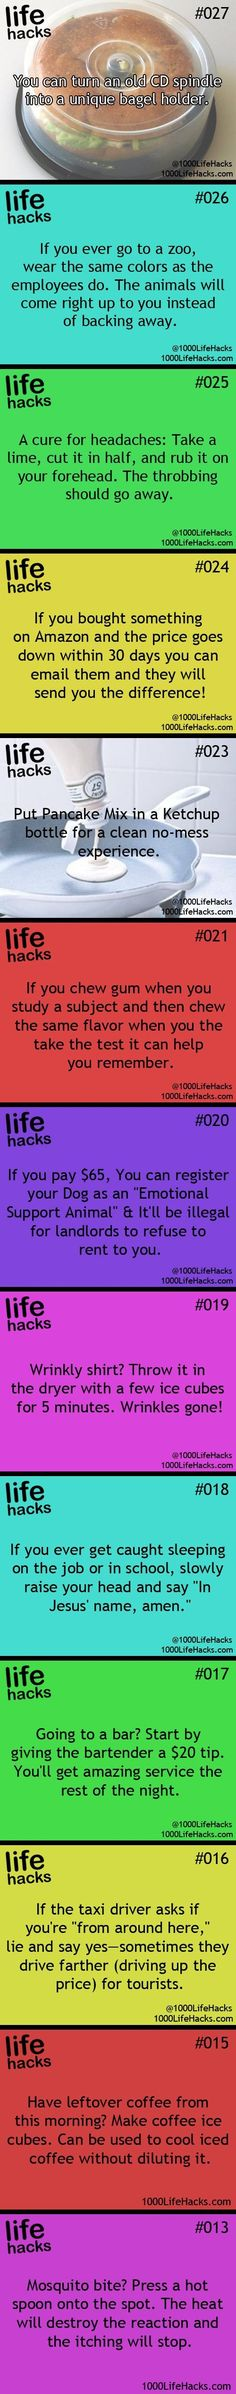 I feel like #20 isn't right. Emotional support dogs are something some people need and if you don't need it I feel like you shouldn't do it. But if you need it then it's a different story.